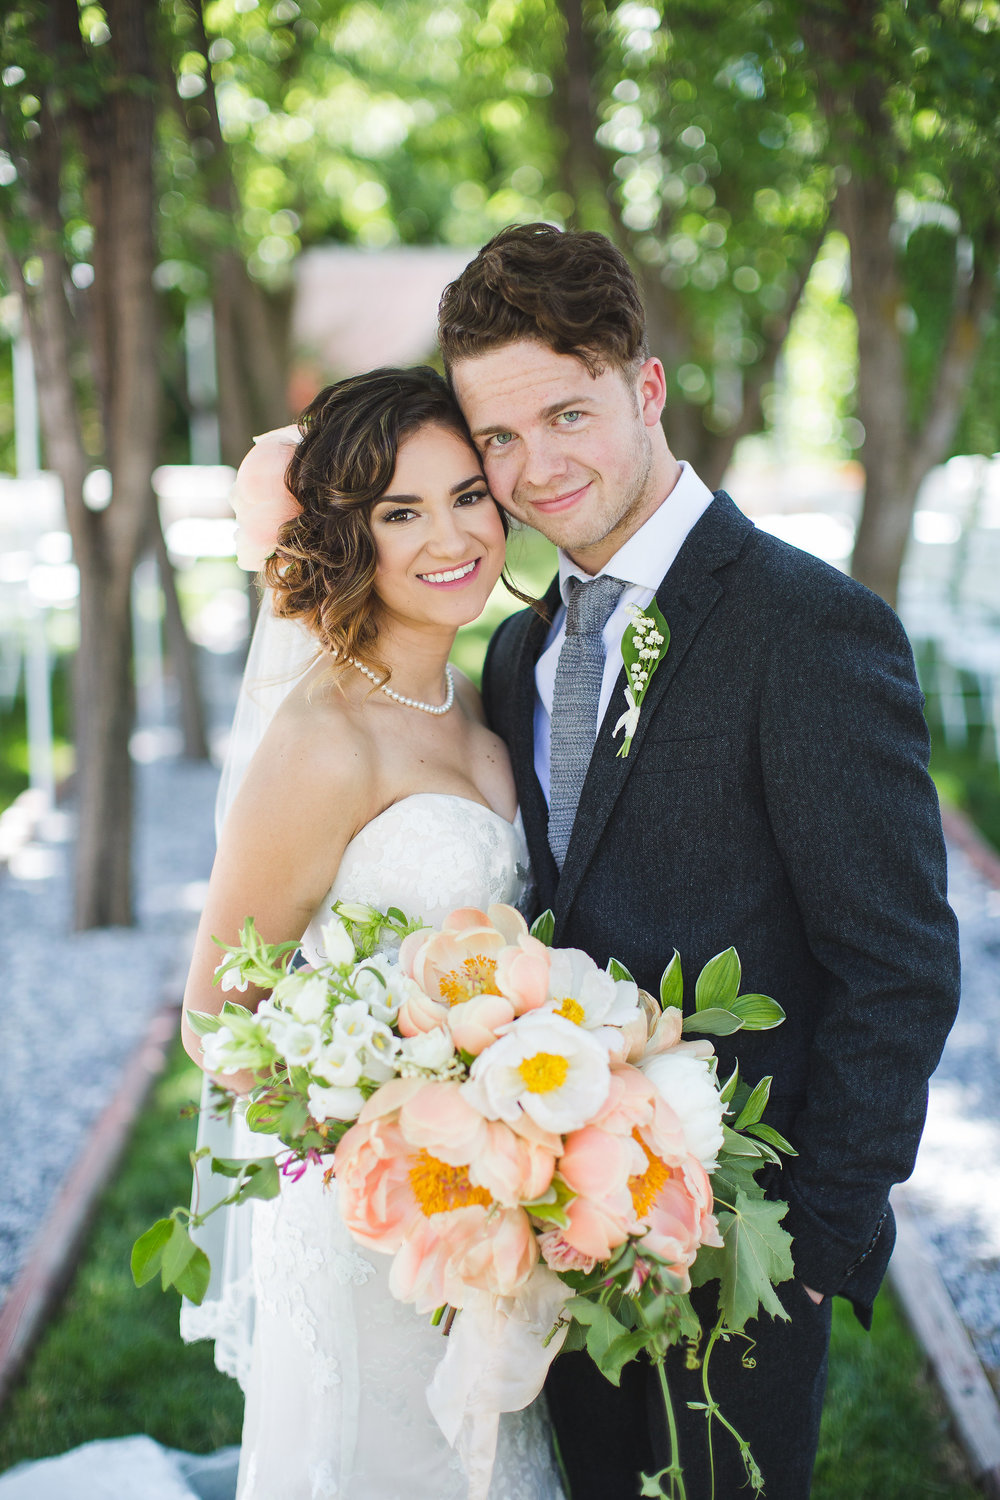 Makayla and Mike French Garden Wedding, Ira and Lucy Coordination and Design, Let It Shine Photography